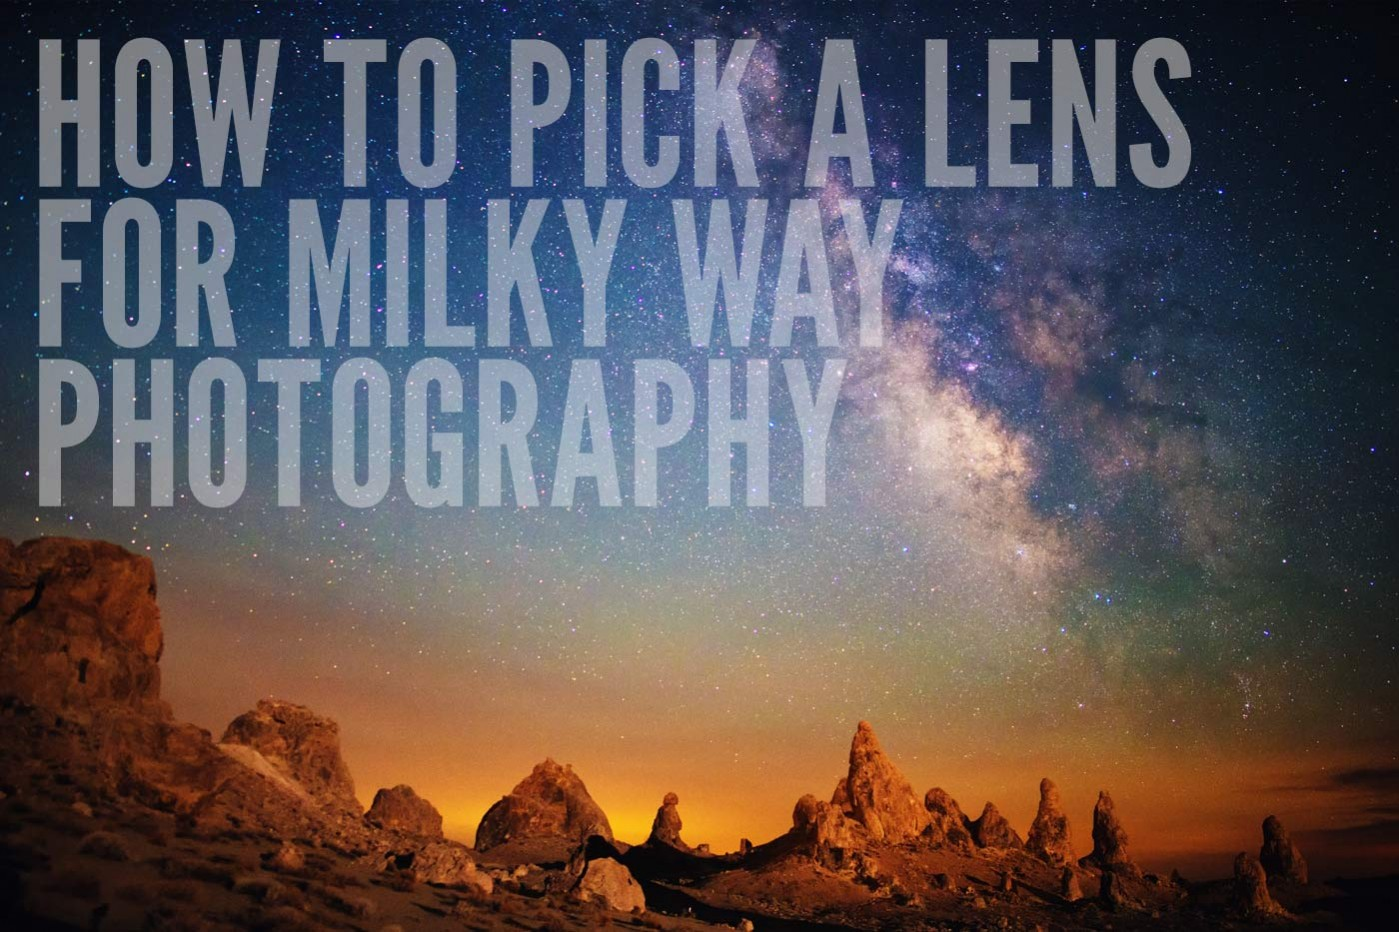 How to Pick a Lens For Milky Way Photography